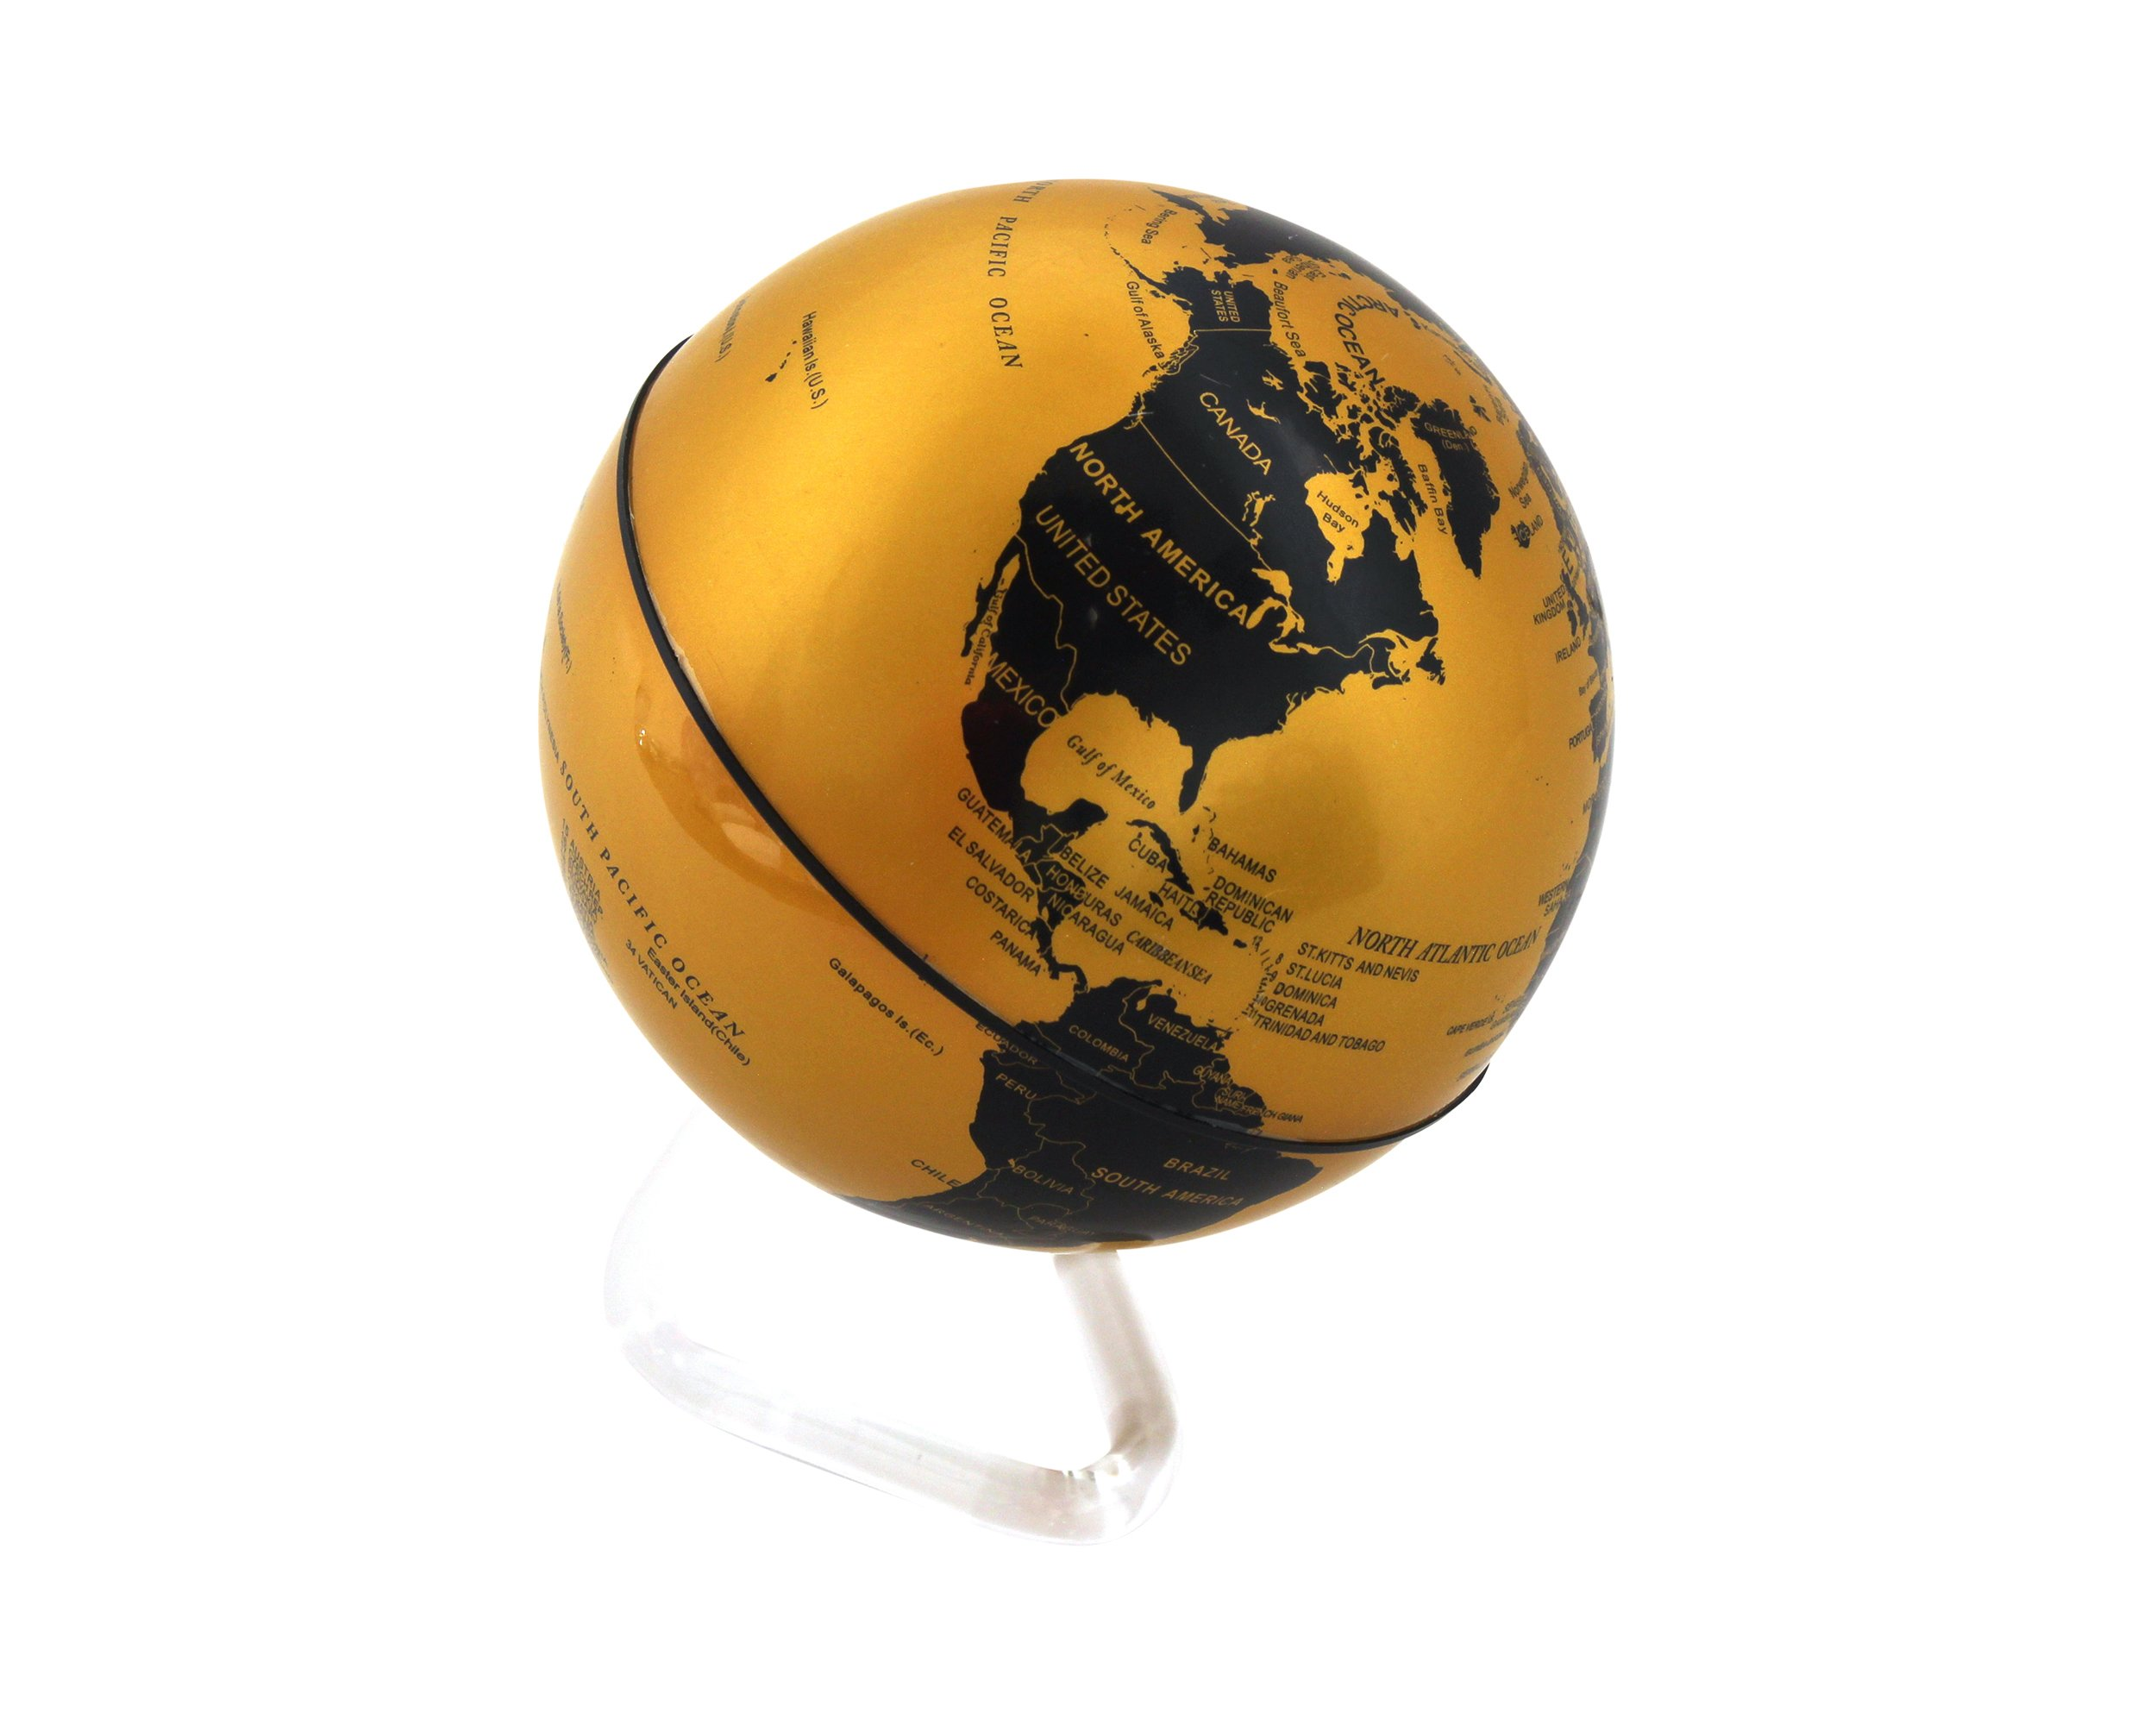 Self Rotating Globe - Auto Spinning Desk Rotary Globe with Color Changing LED- Revolving Globe - World, Planet Earth Globe Sphere - Home, Office Desktop Decoration - Educational (Gold/Black, 4'')